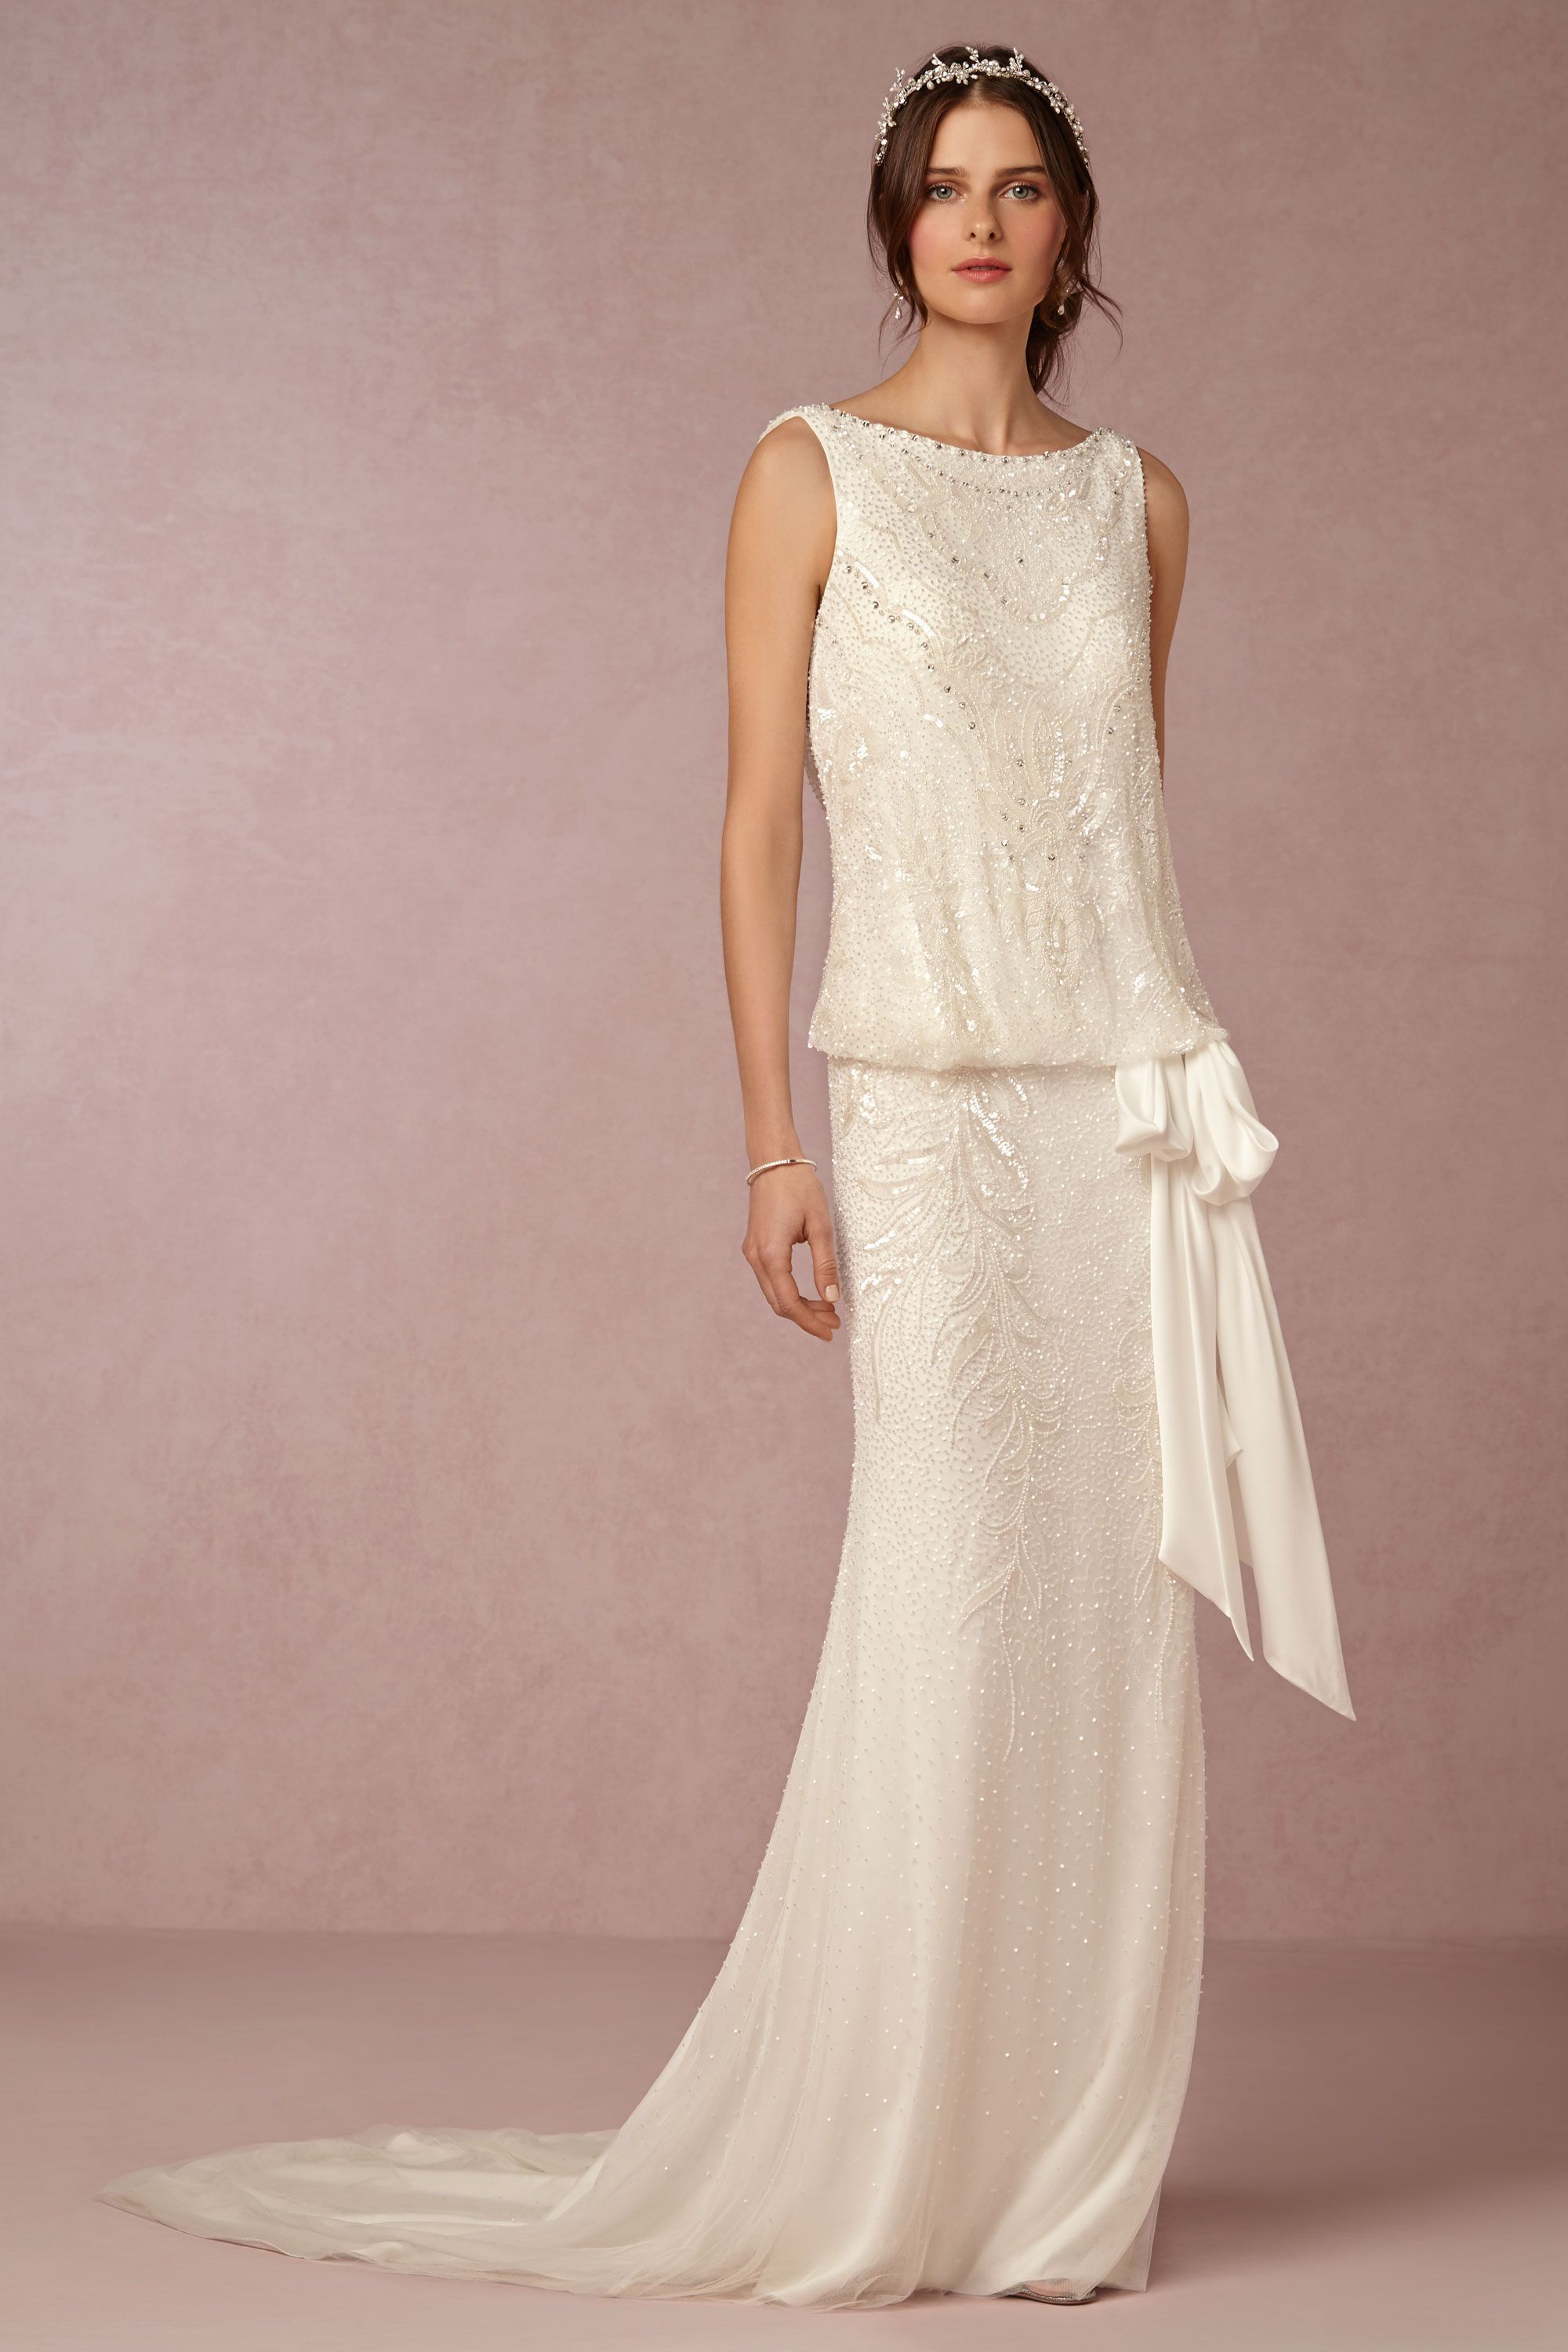 Arabella gown from bhldn i love the drop waist look so classic